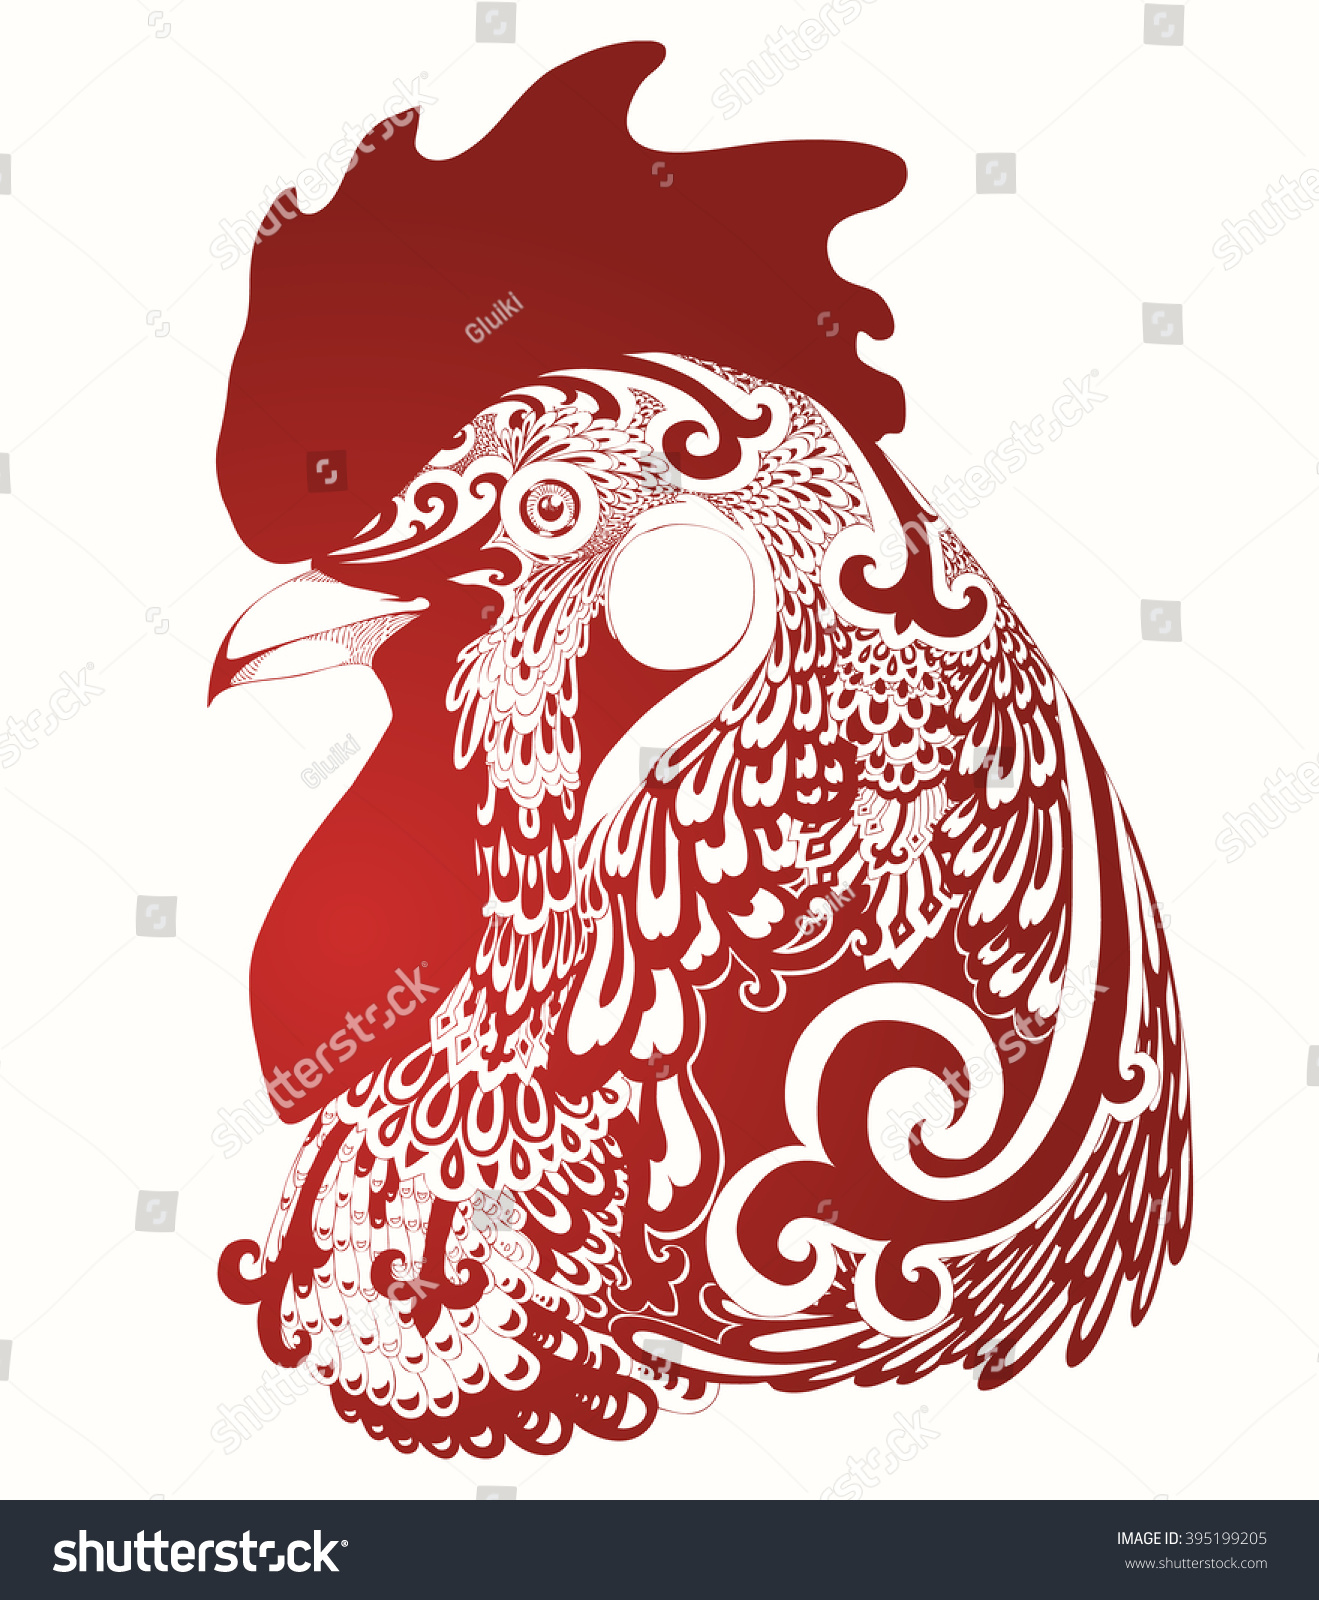 Chinese Calendar Illustration : Chinese calendar year rooster cock stock vector